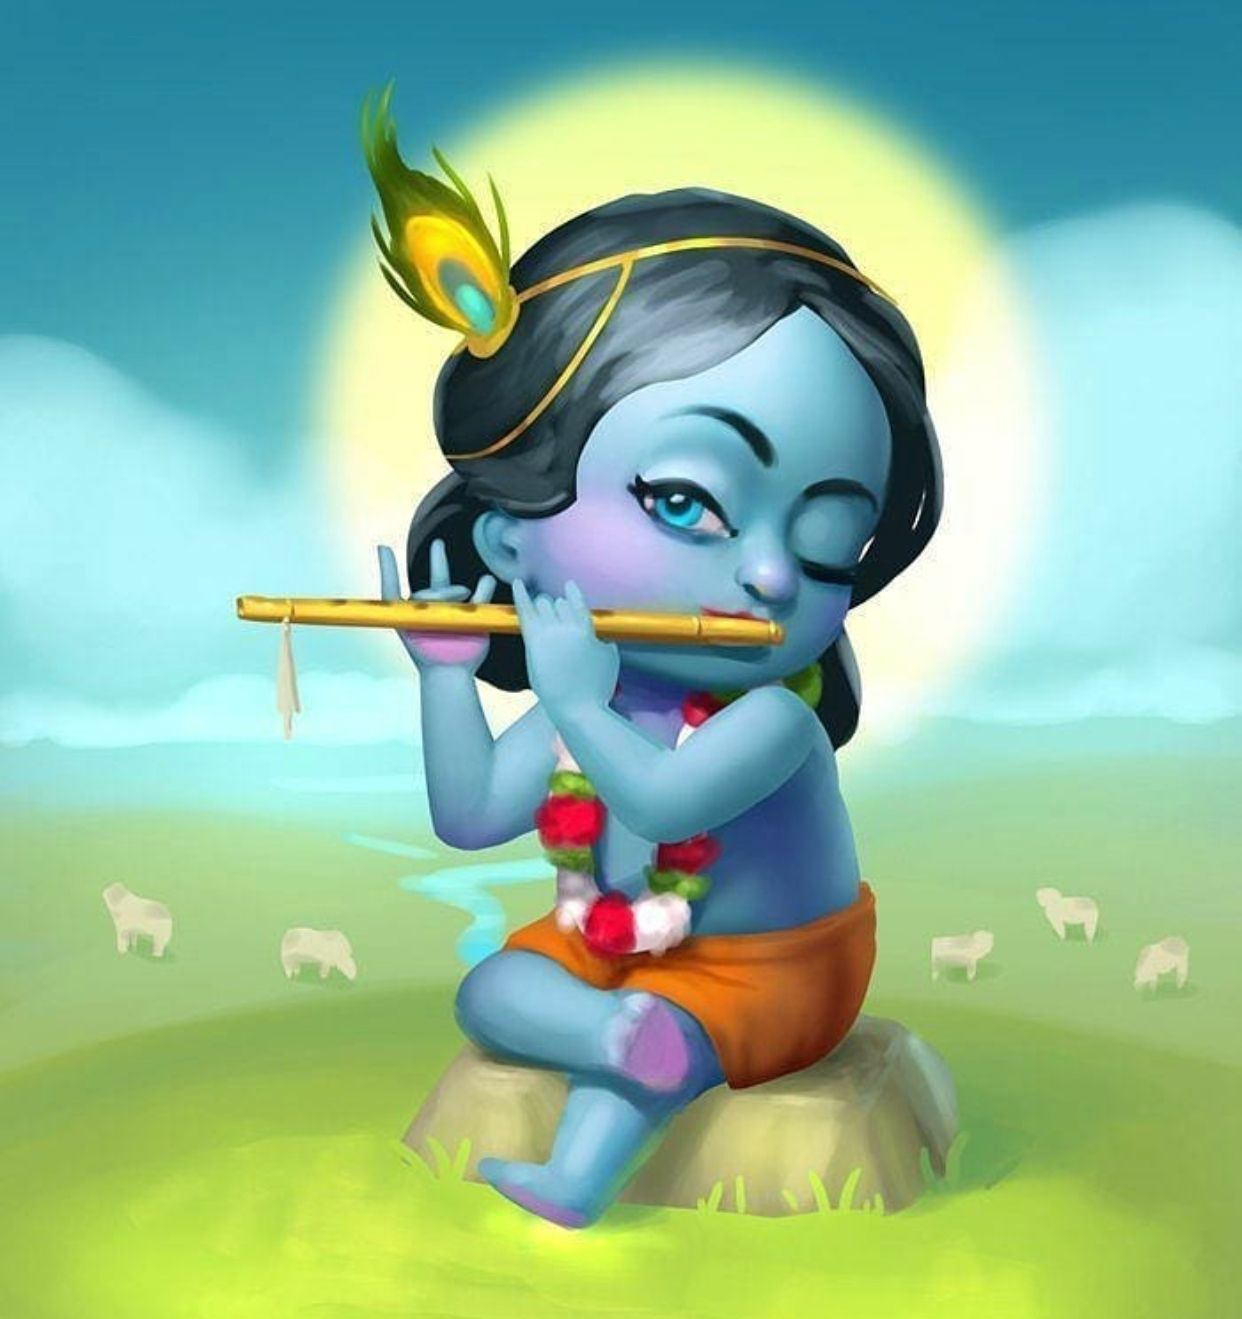 Pin By Priscilla On Cartoon Gods ॐ In 2019 Baby Krishna Lord Krishna Wallpapers Cute Krishna